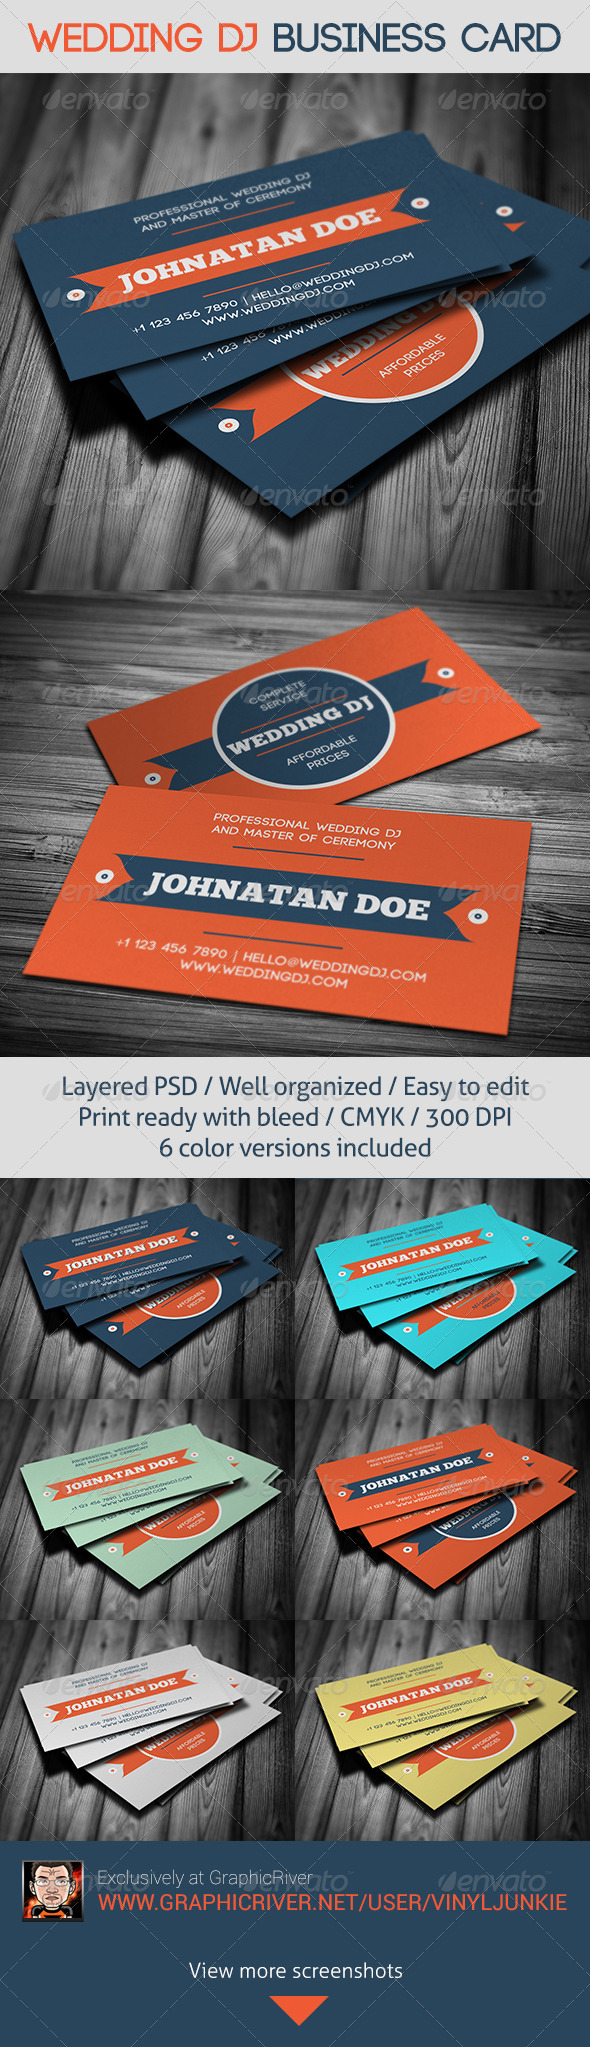 GraphicRiver Wedding DJ Business Card 6277272